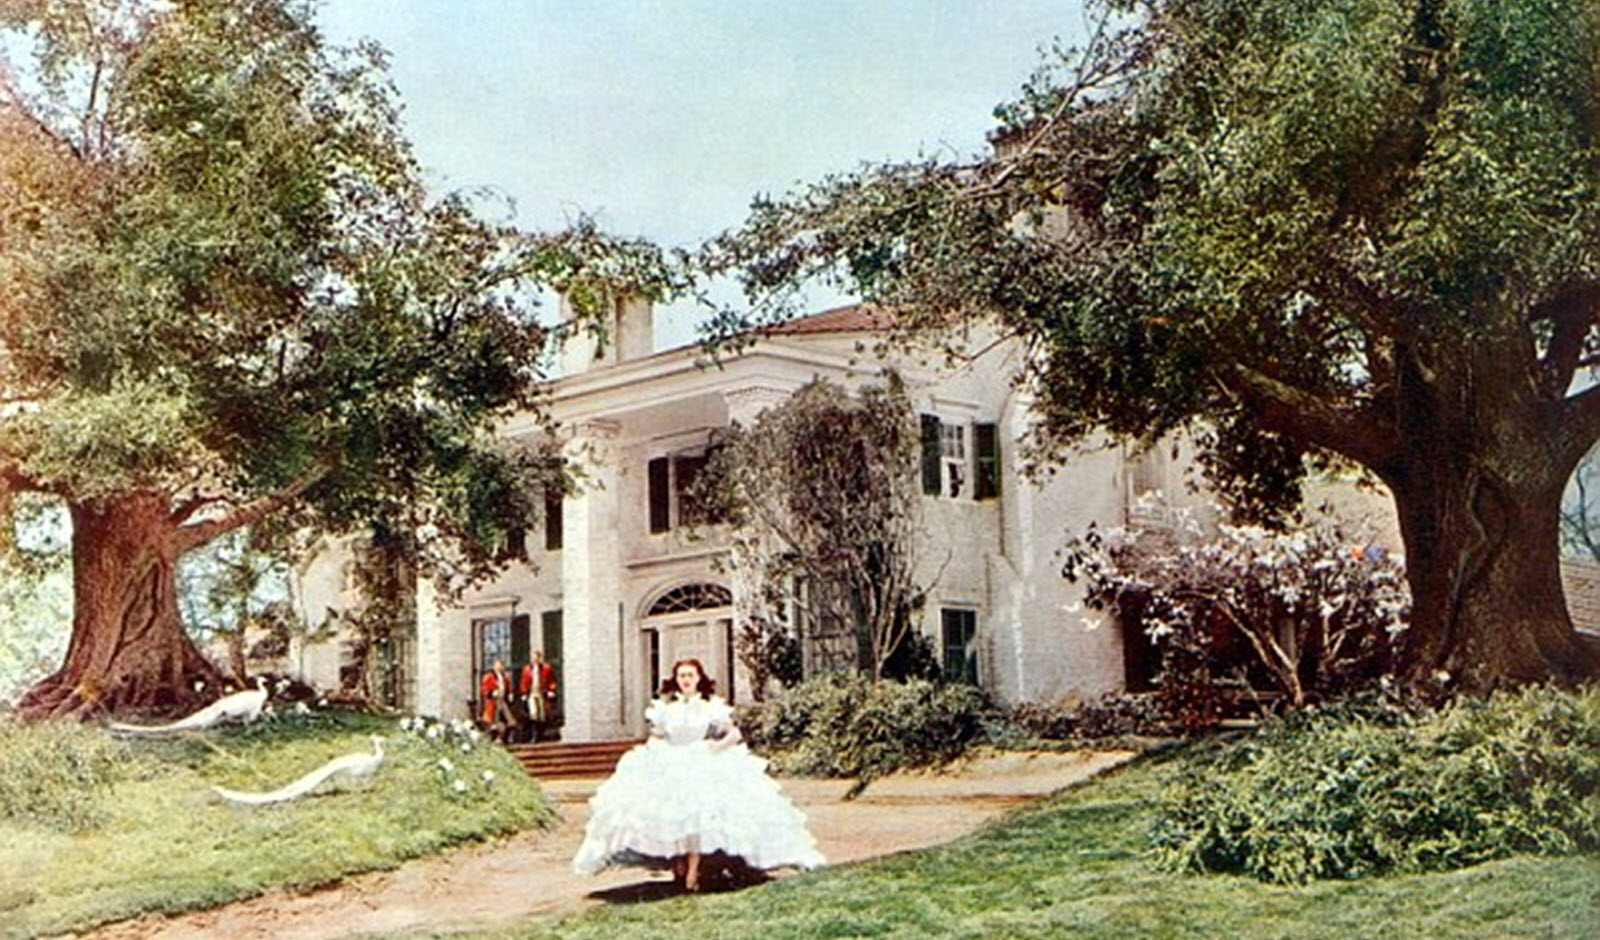 Peter Bonner has taken up the mantle of Saving Tara, the iconic facade from Gone With The Wind and the source of Scarlett's strength